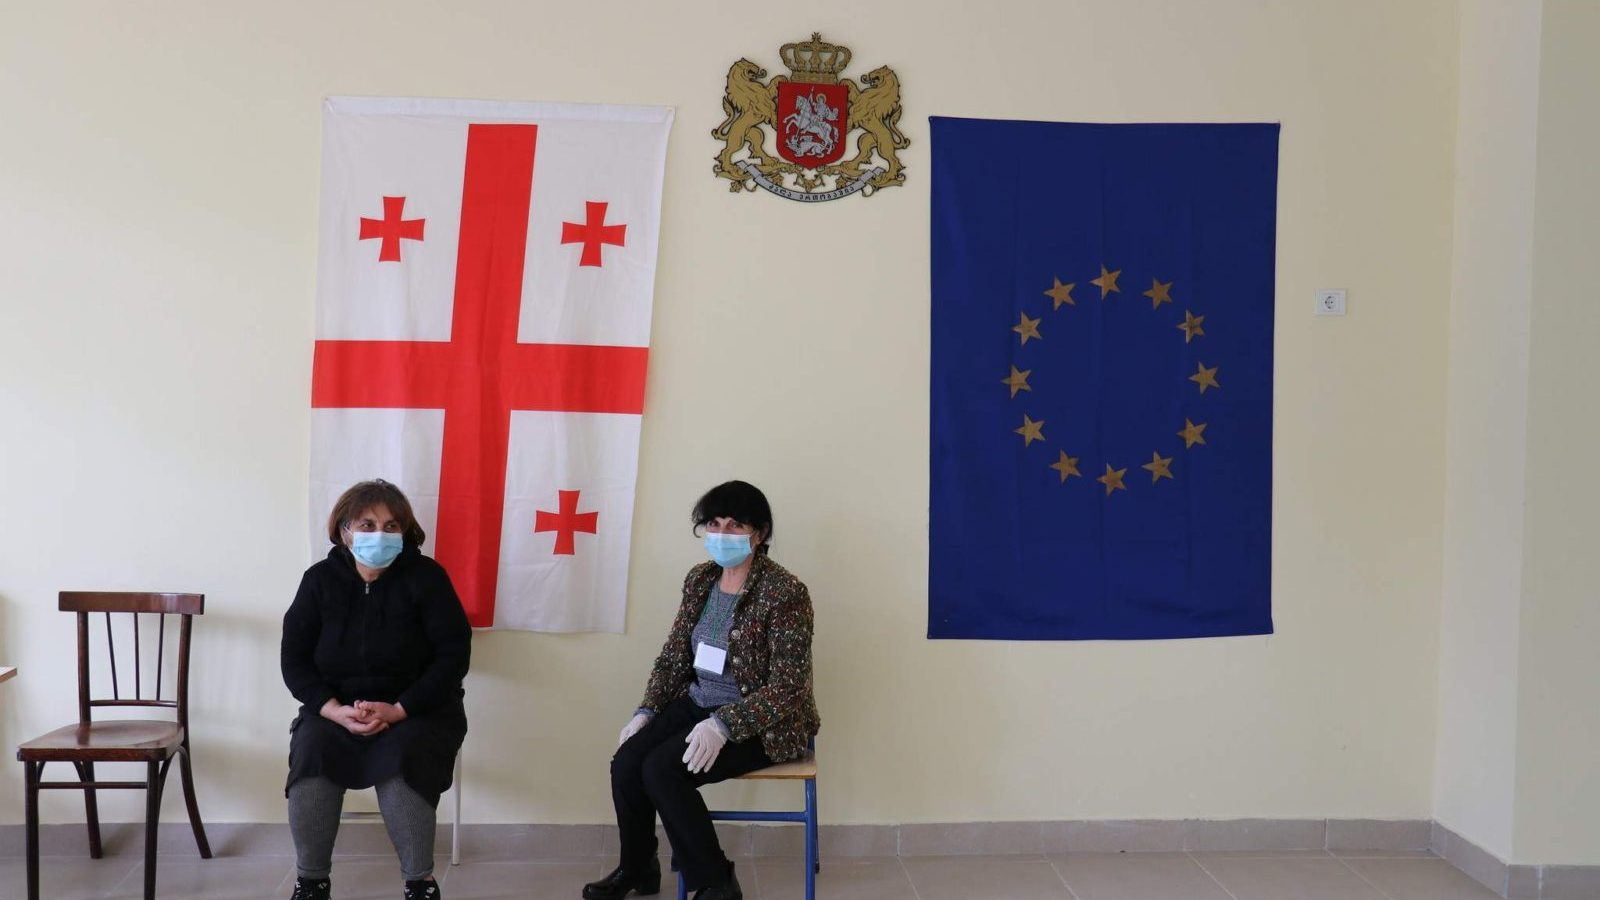 Photo: Polling station in Tbilisi, 31 October 2020. Credit: OSCE PA